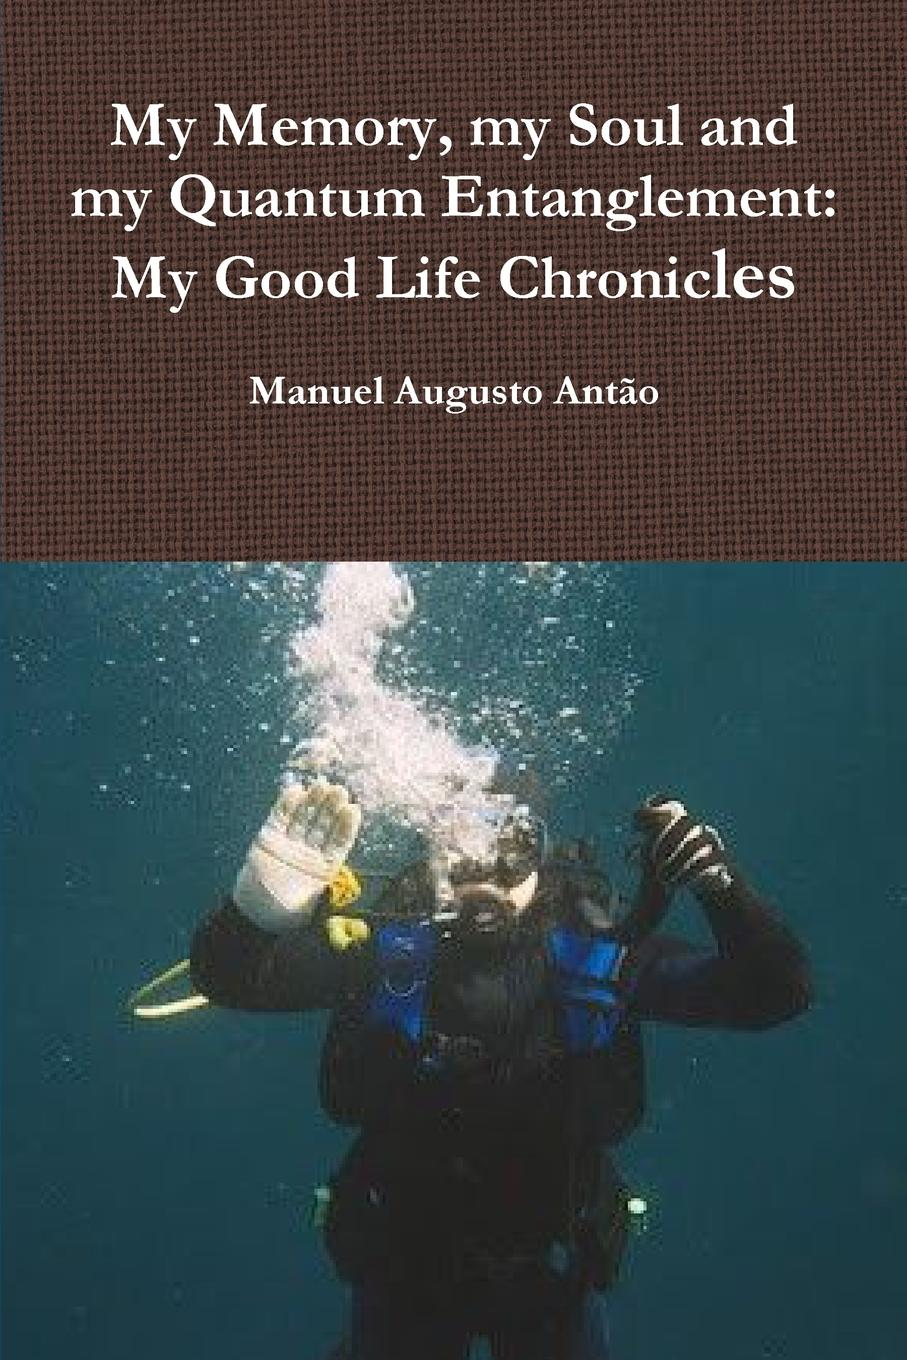 Manuel Augusto Antão My Memory, my Soul and my Quantum Entanglement - My Good Life Chronicles my place